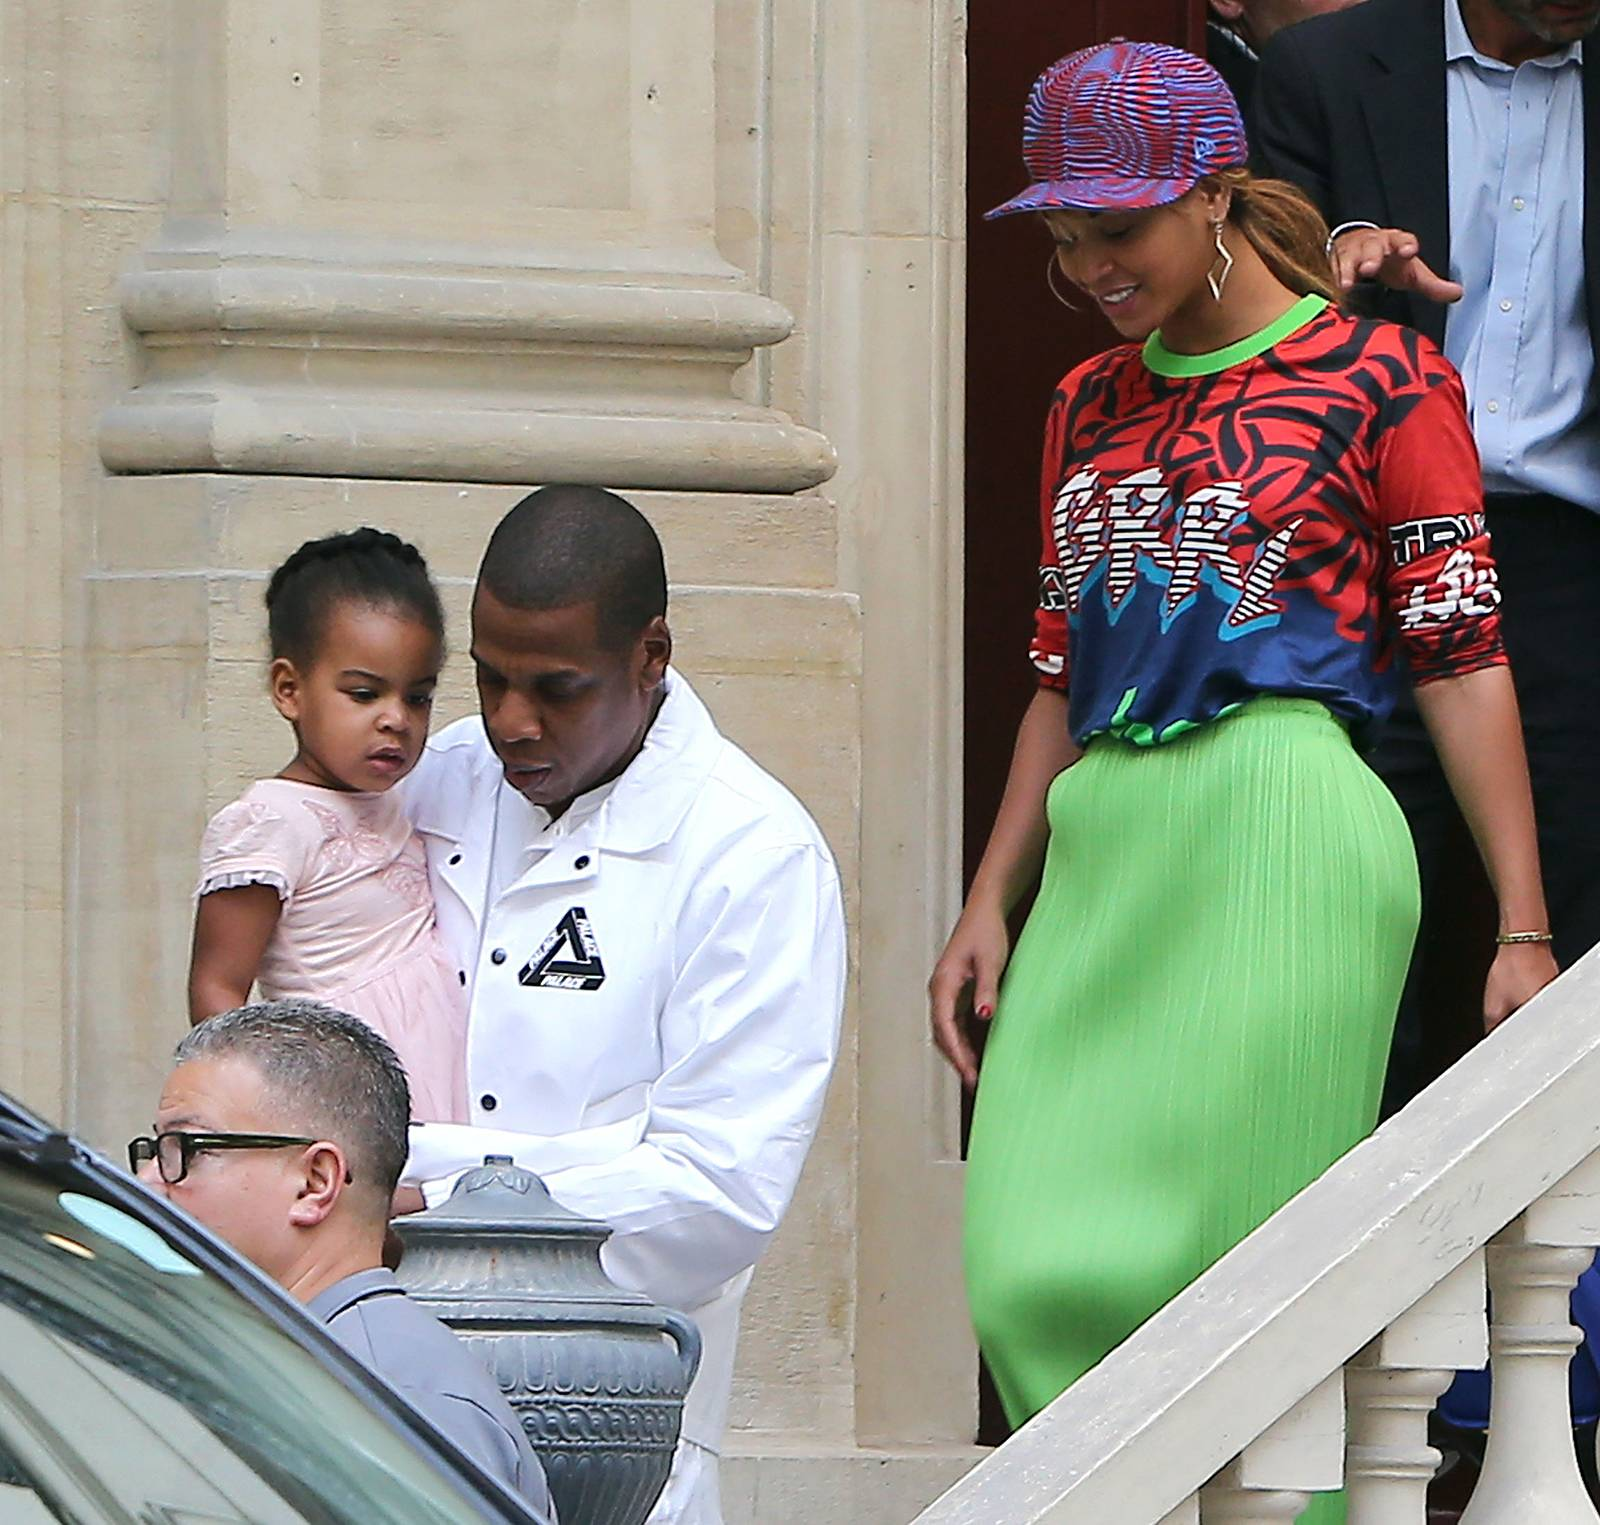 Jay Z, Beyonce and Blue Ivy Do Paris - Beyonce, Jay Z and Blue Ivy were spotted visiting luxurious real estates in Paris. They've got their eyes on a home located near Elysee Palace, where the French president resides. Must be nice.   (Photo: KCS Presse/Splash News)